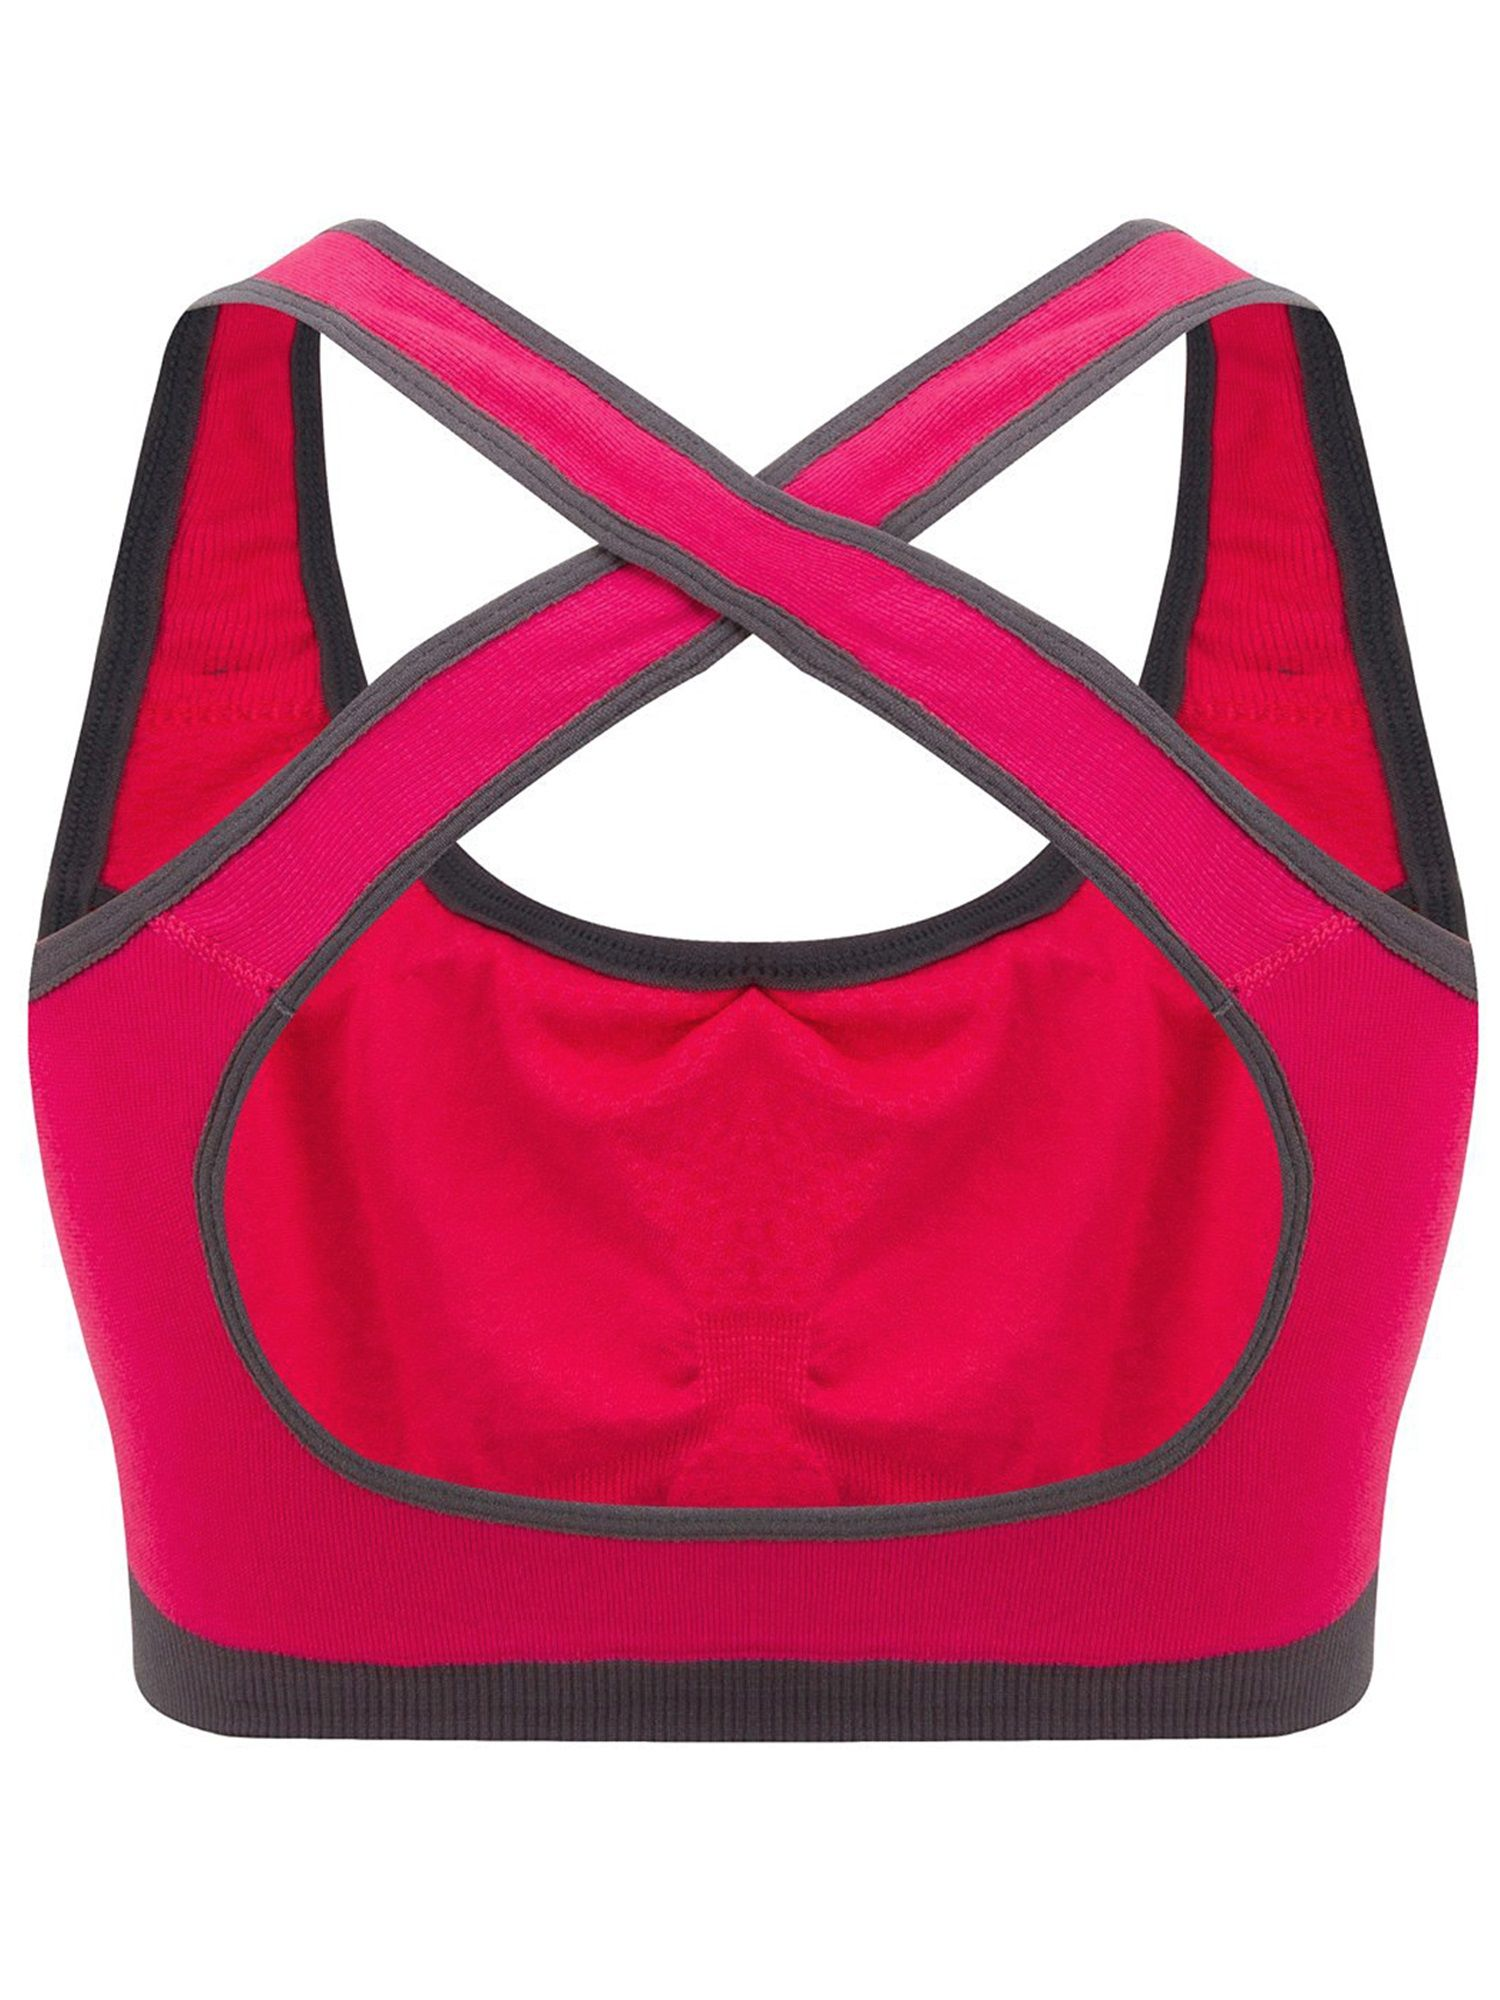 1ed91b4be7037 SAYFUT Women s Seamless Padded Cups Running Workout Yoga Fitness Athlete  Sports Bra Padded